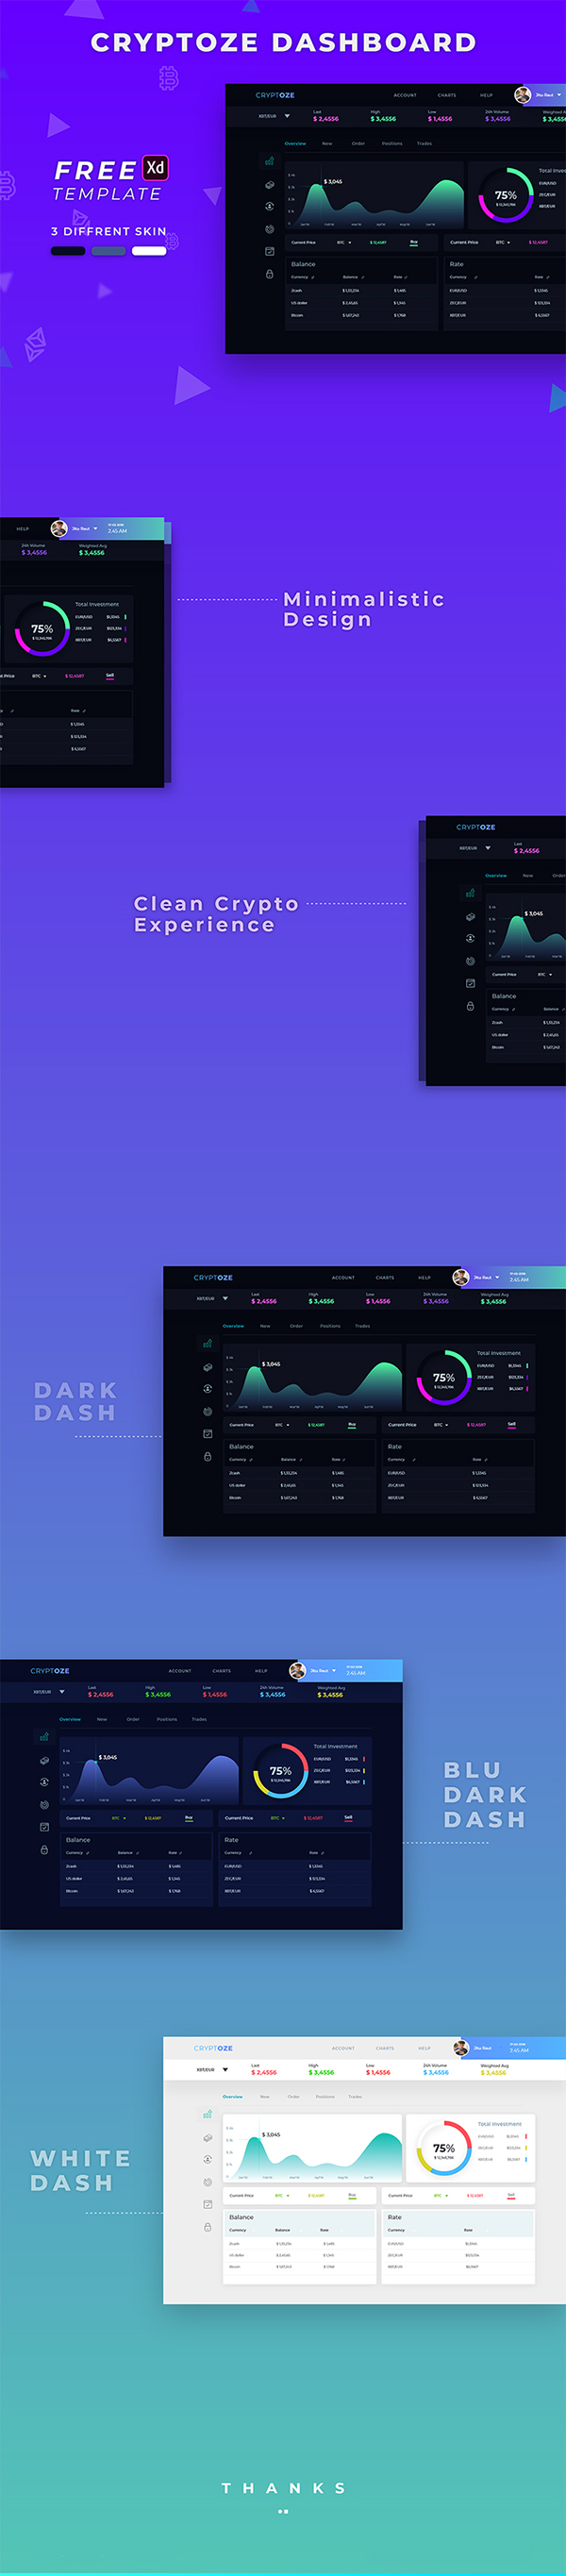 Cryptoze Dashboard UI Design Free PSD Download